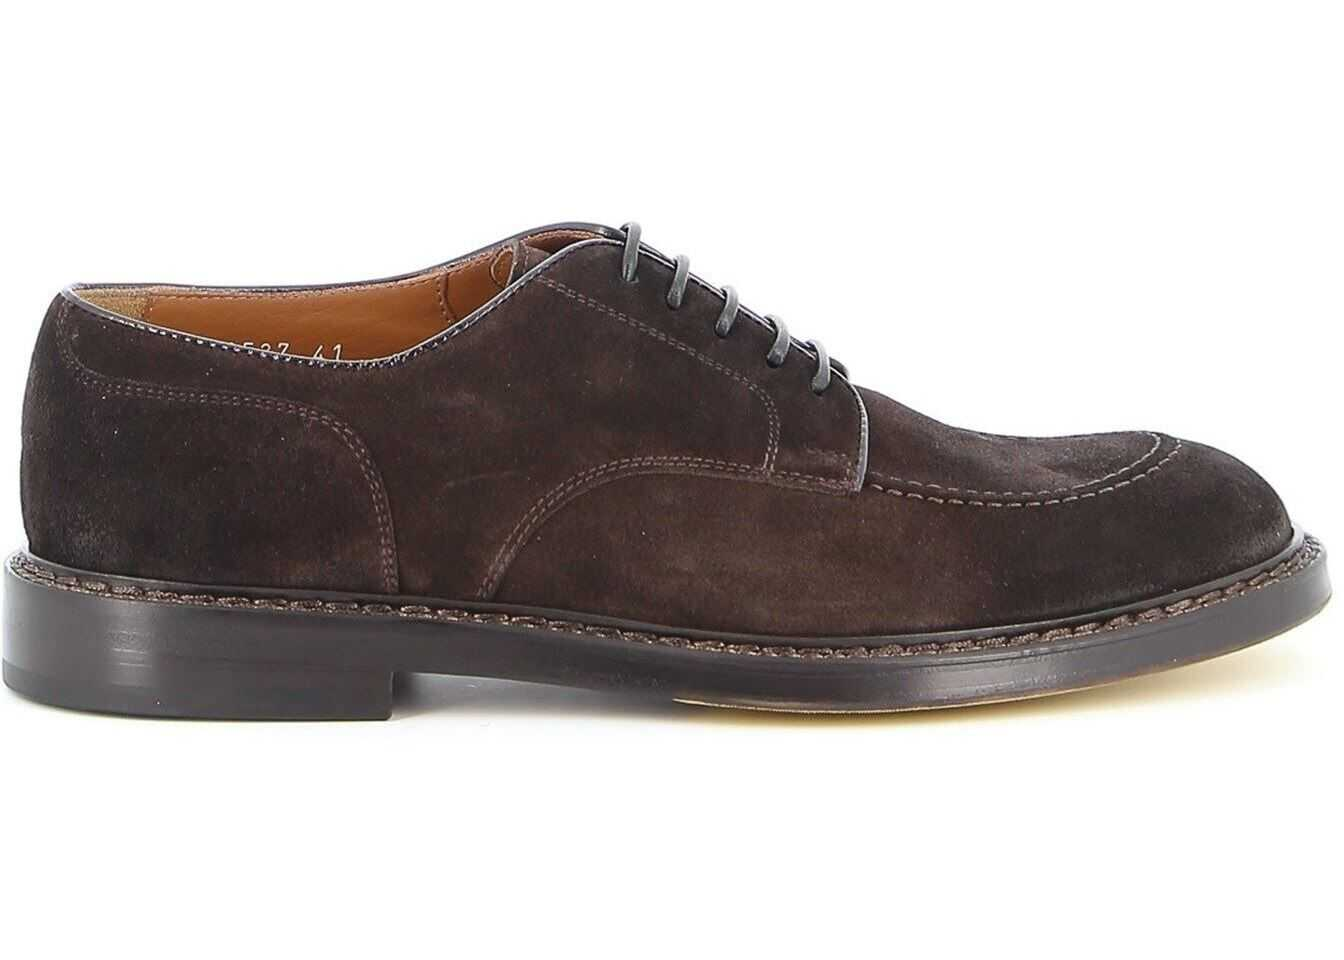 Doucal's Suede Derby Shoes In Brown DU2527SIENUFO24NTM00 Brown imagine b-mall.ro